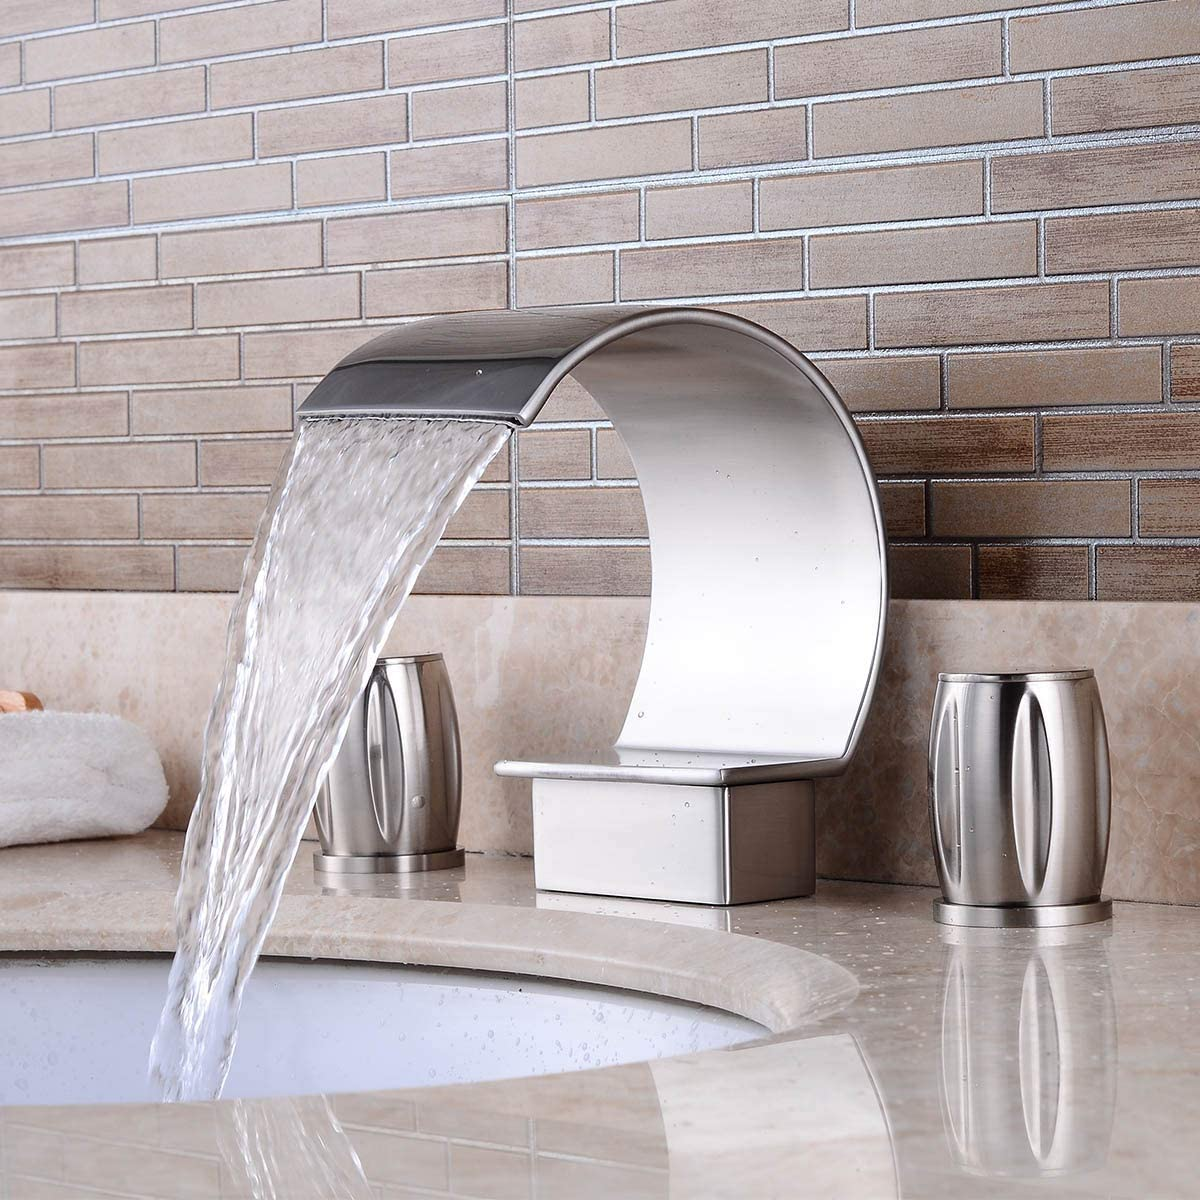 Elegant Nickel Brushed Widespread Waterfall Curved Spout Bathroom Sink Faucet Lavatory Bathtub Faucets Two Handles Three Holes,Brass and Stainless Steel